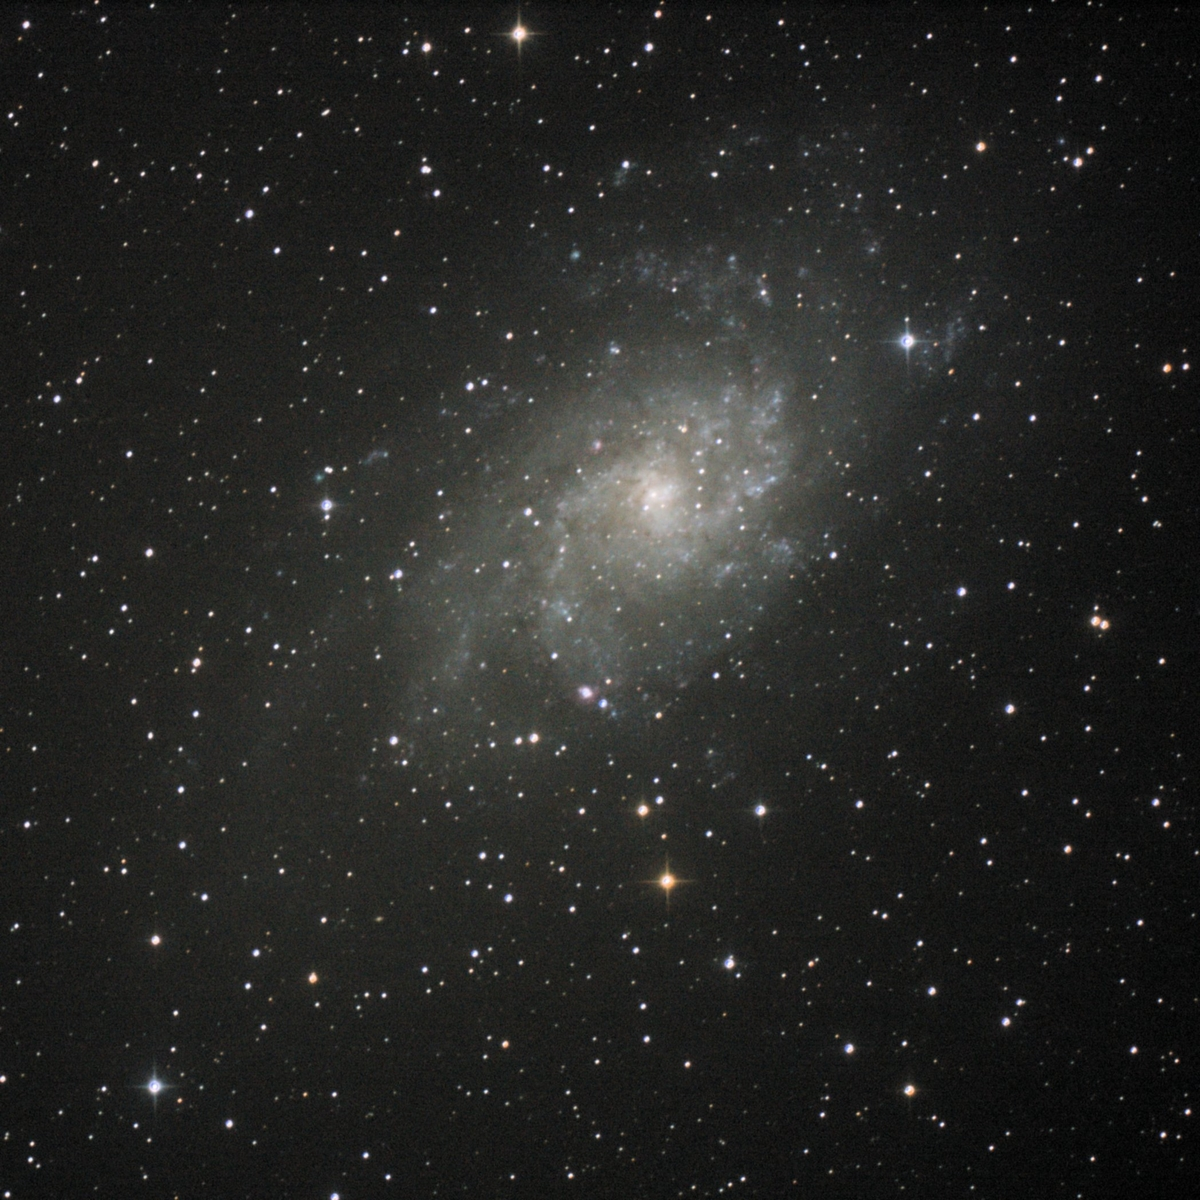 2018-09-07 Triangulum Galaxy (M33)